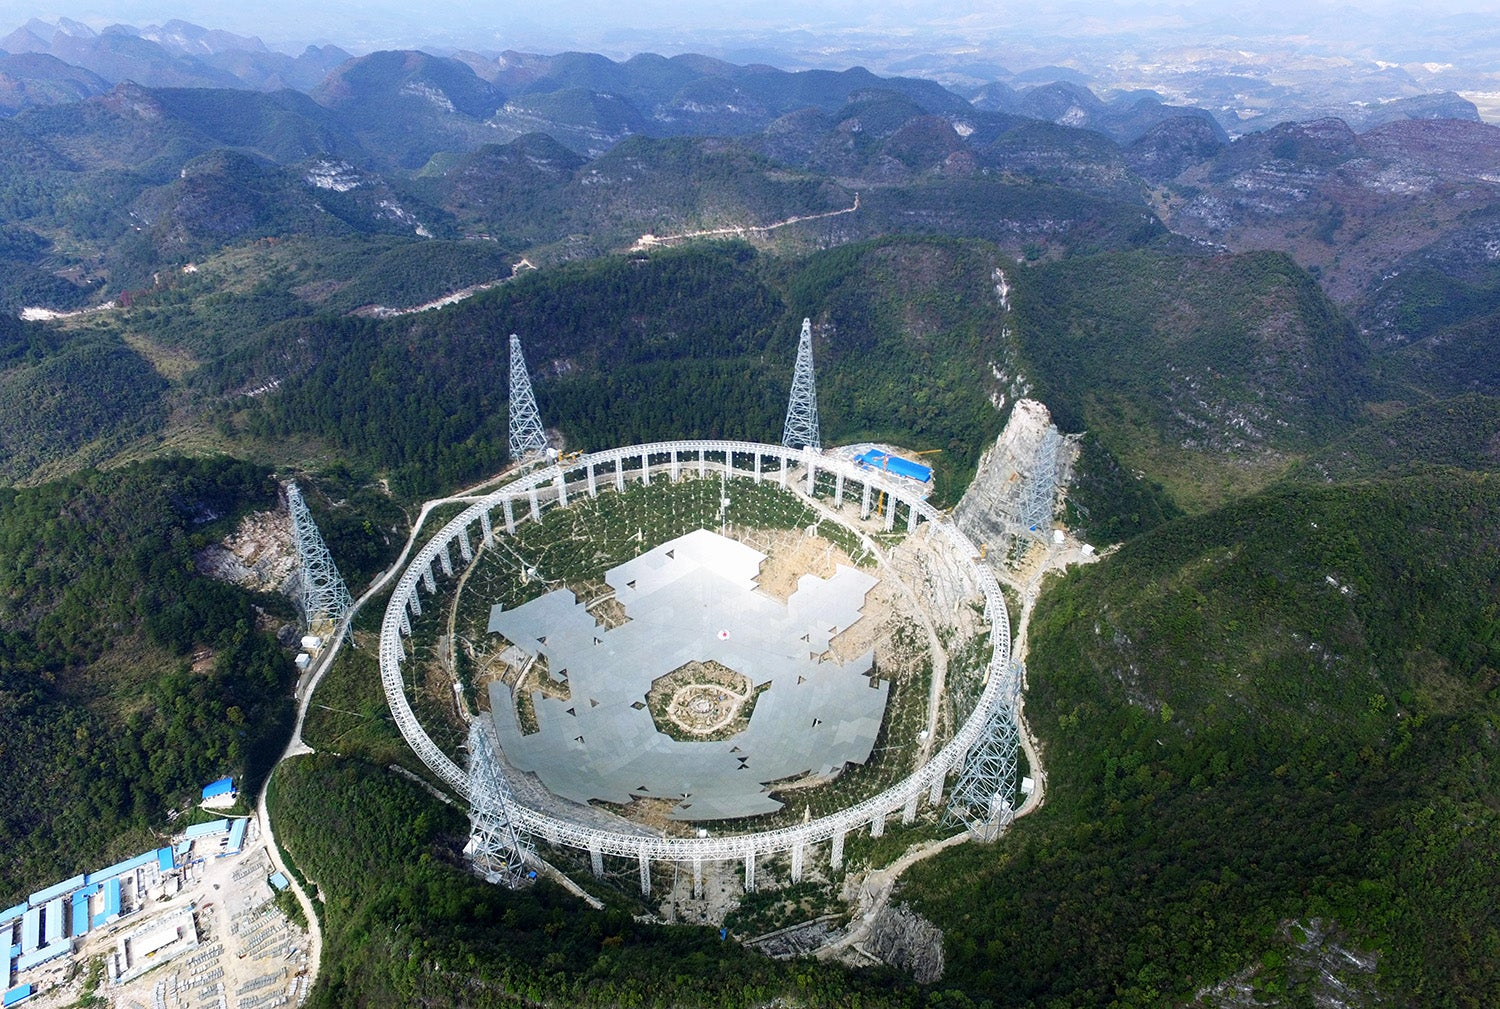 The World's Largest Radio Telescope Dish Is Taking Shape Like a Giant Puzzle